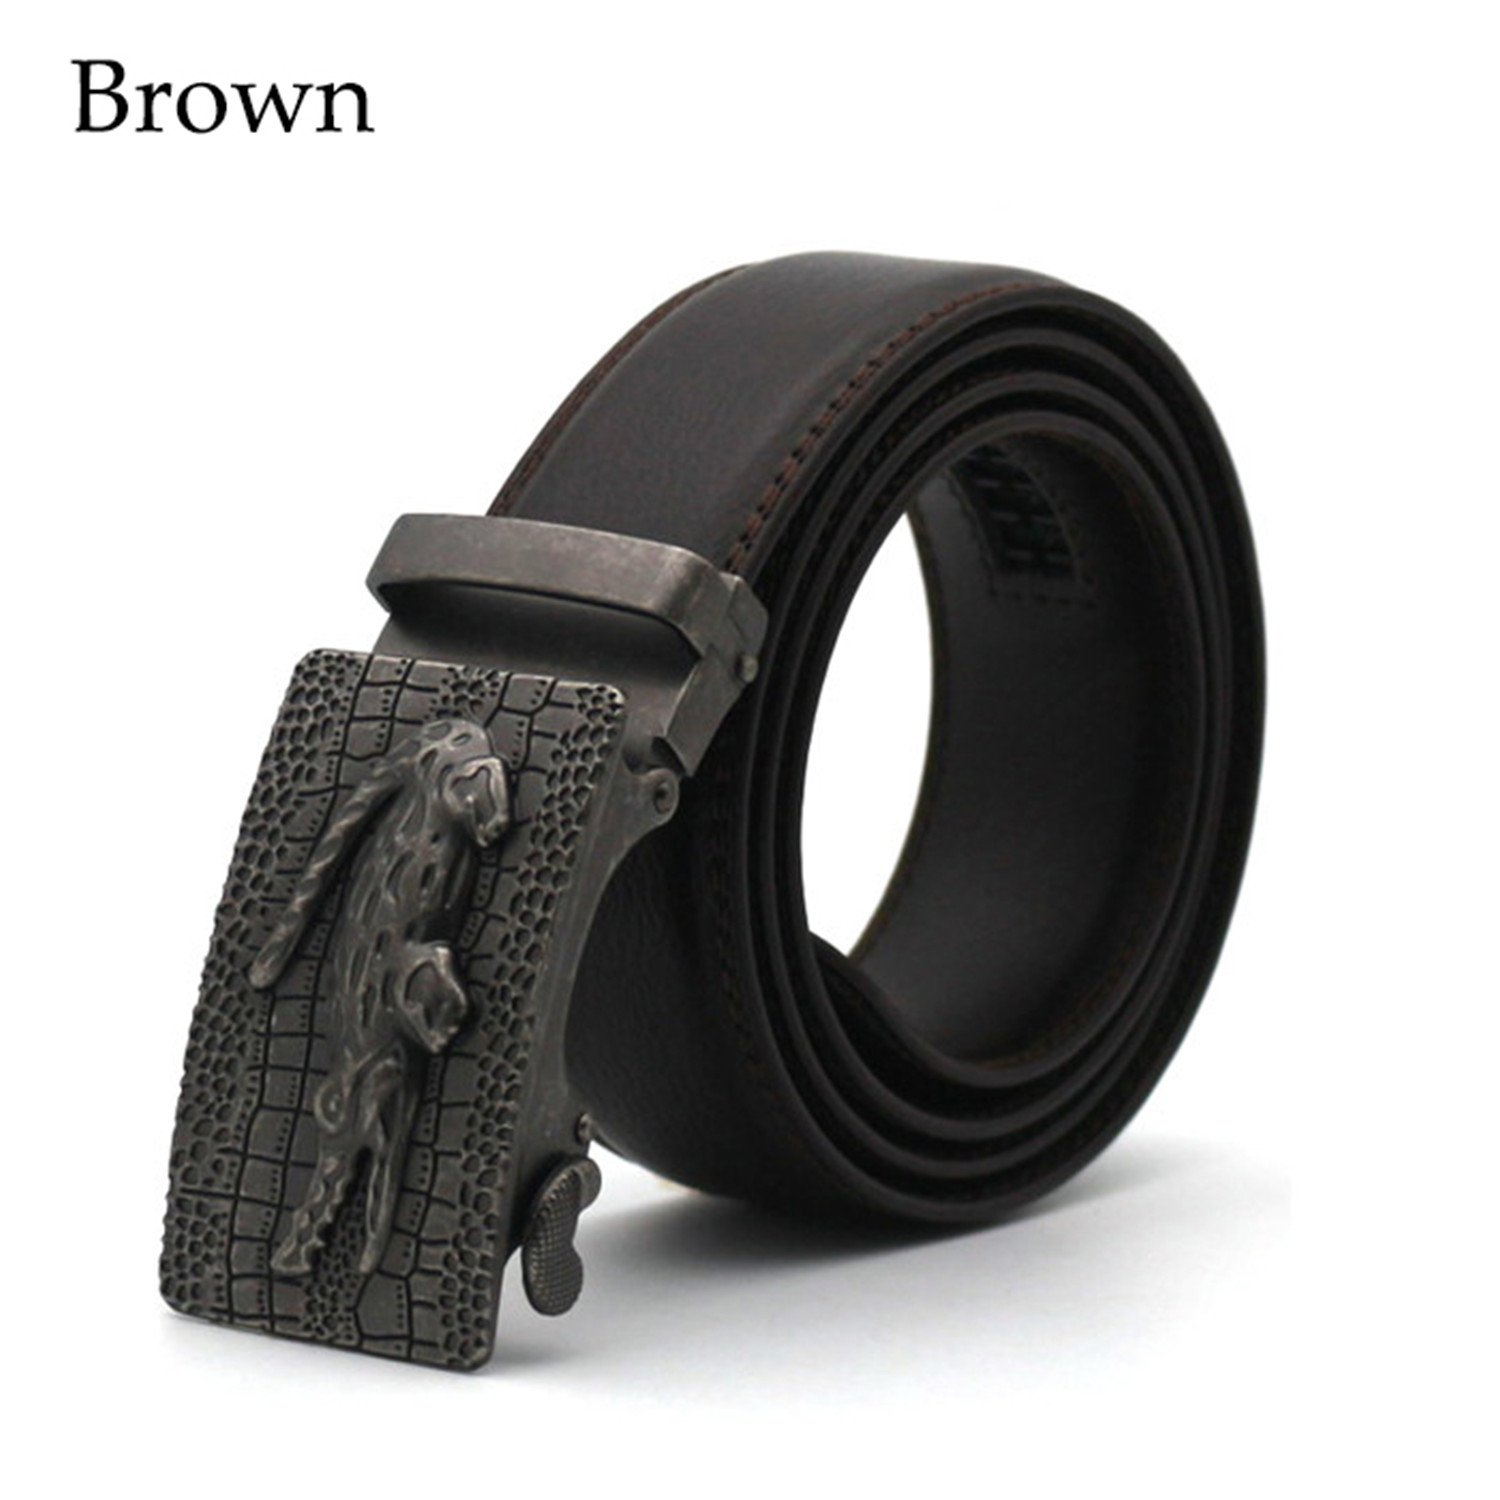 Amazon.com  Miki Da Luxury Business Casual Belt Man Black Brown Genuine  Leather Belts For Jeans Automatic Buckle Strap Belt Cintos brown 110cm   Clothing ff43d170342